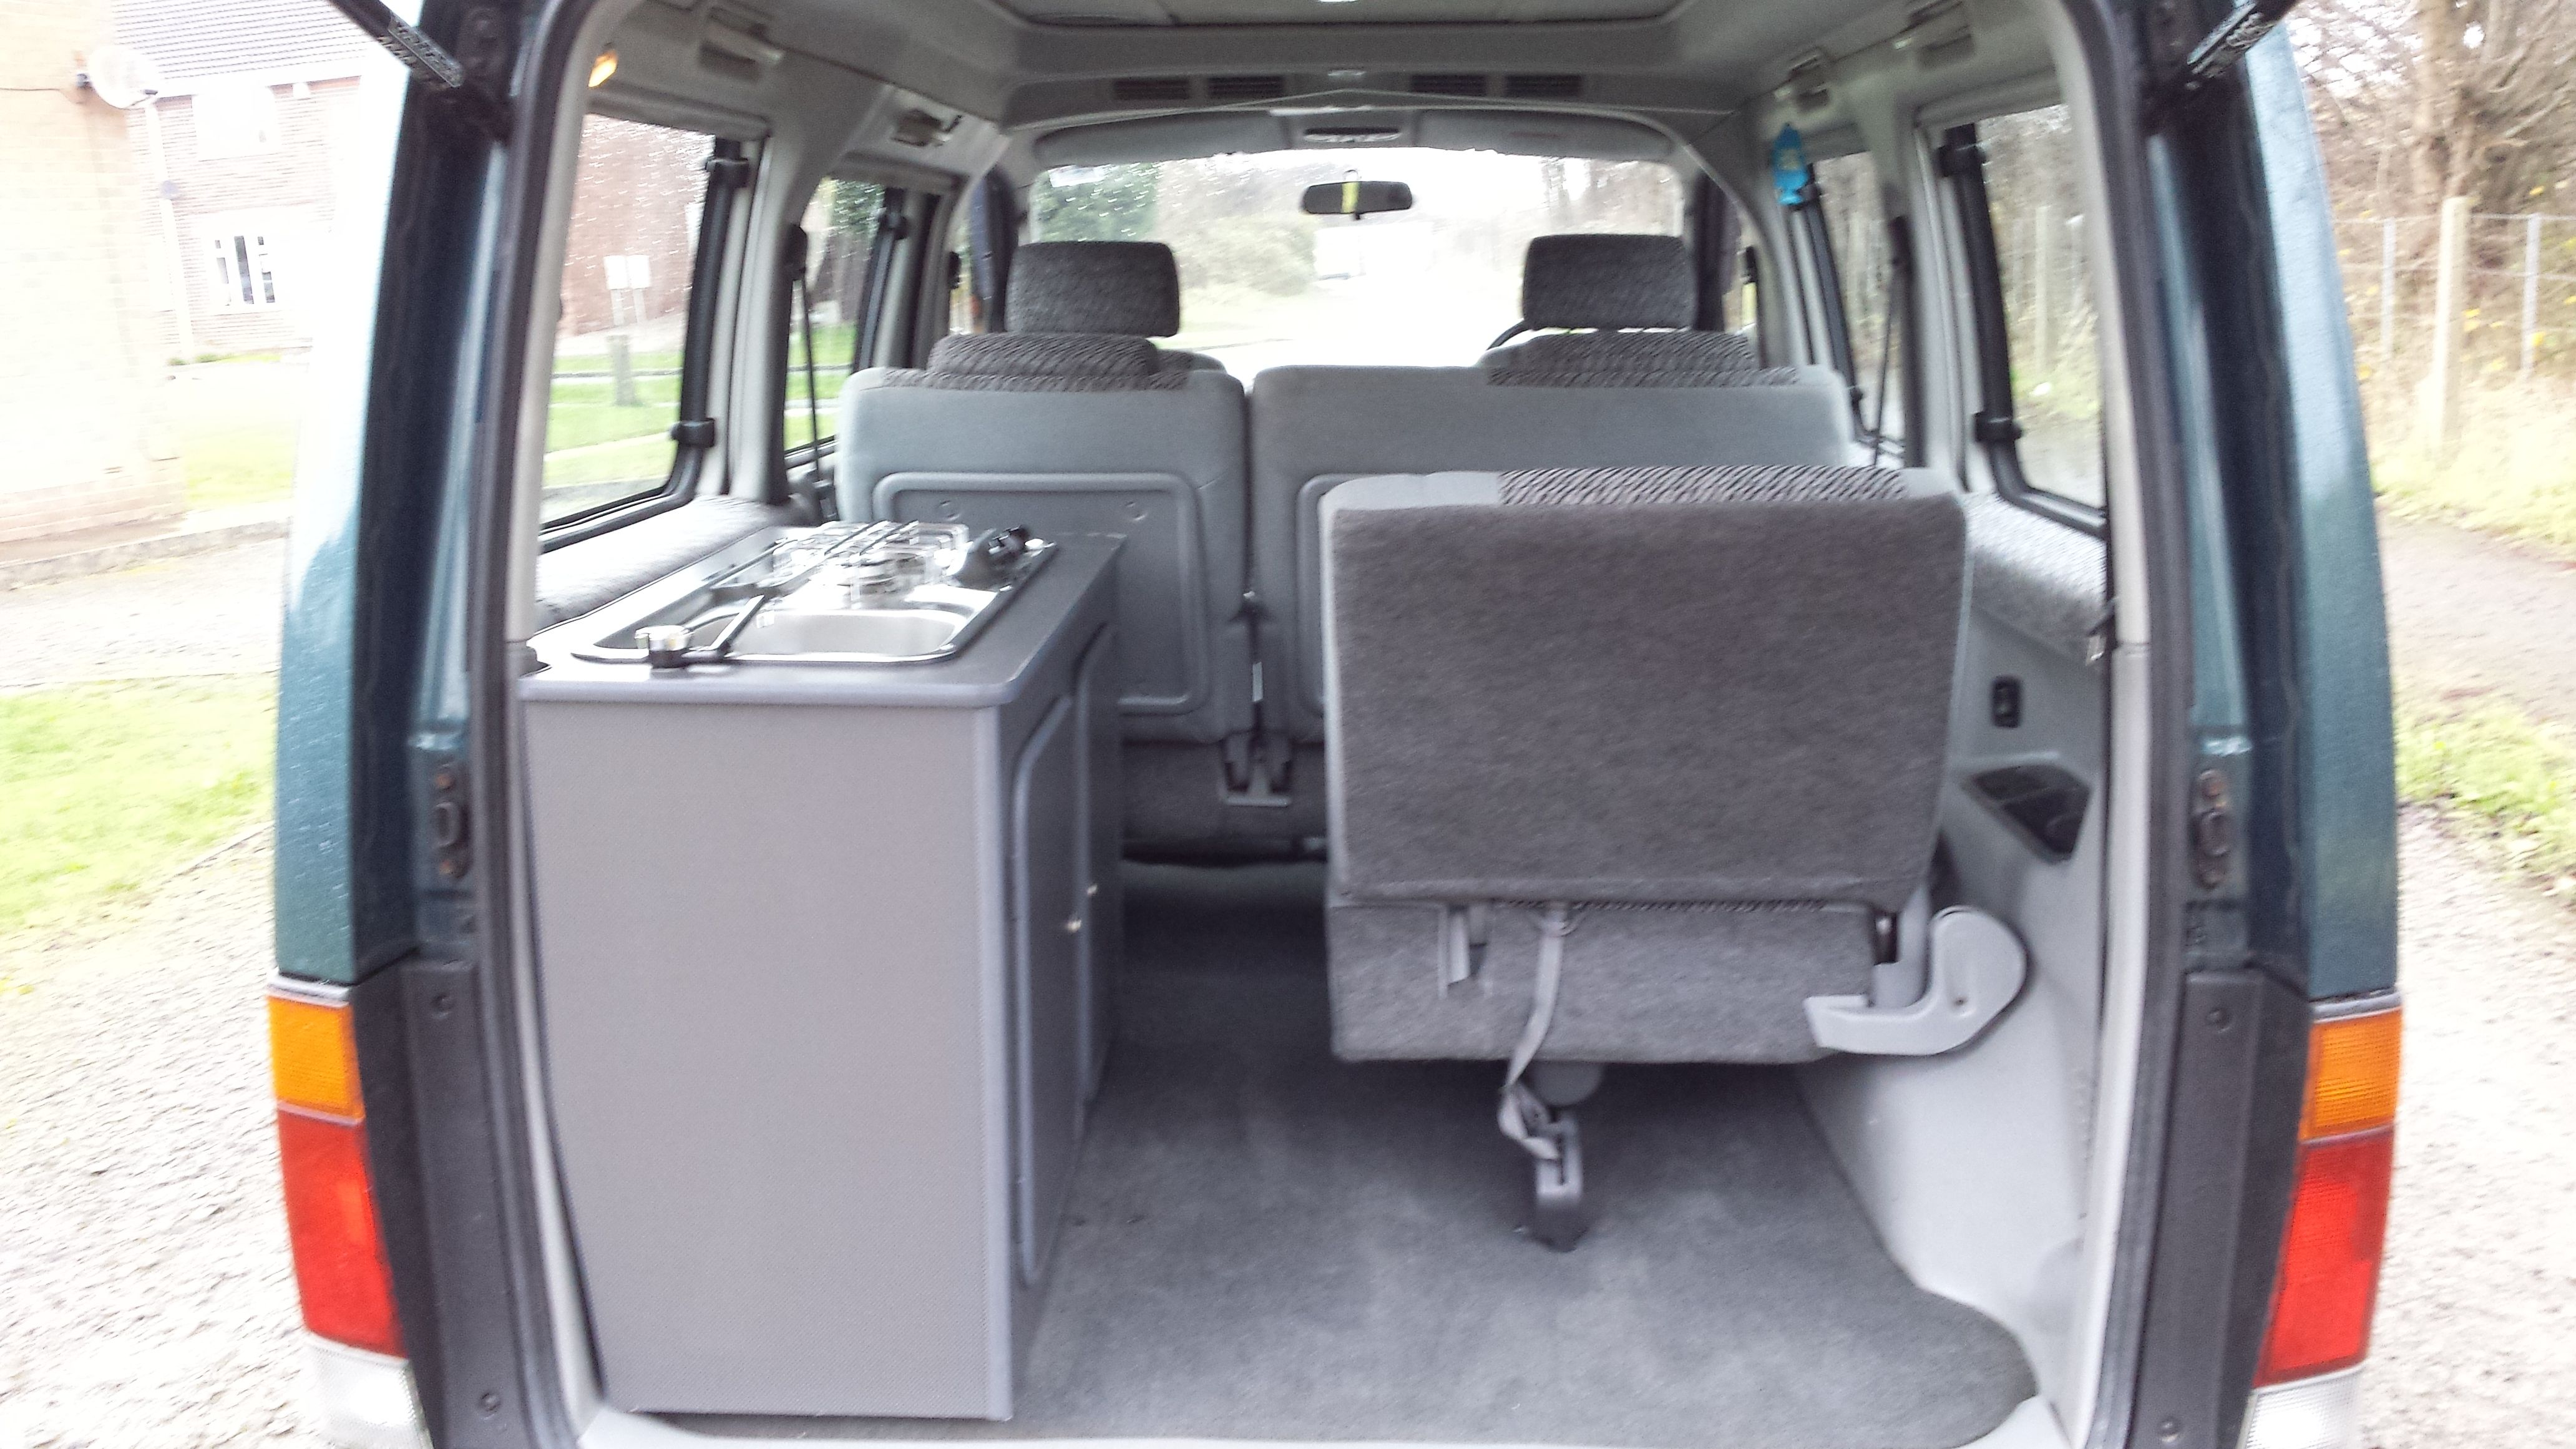 Mazda bono camper van rear view with fold up 6th seat on right carbon look